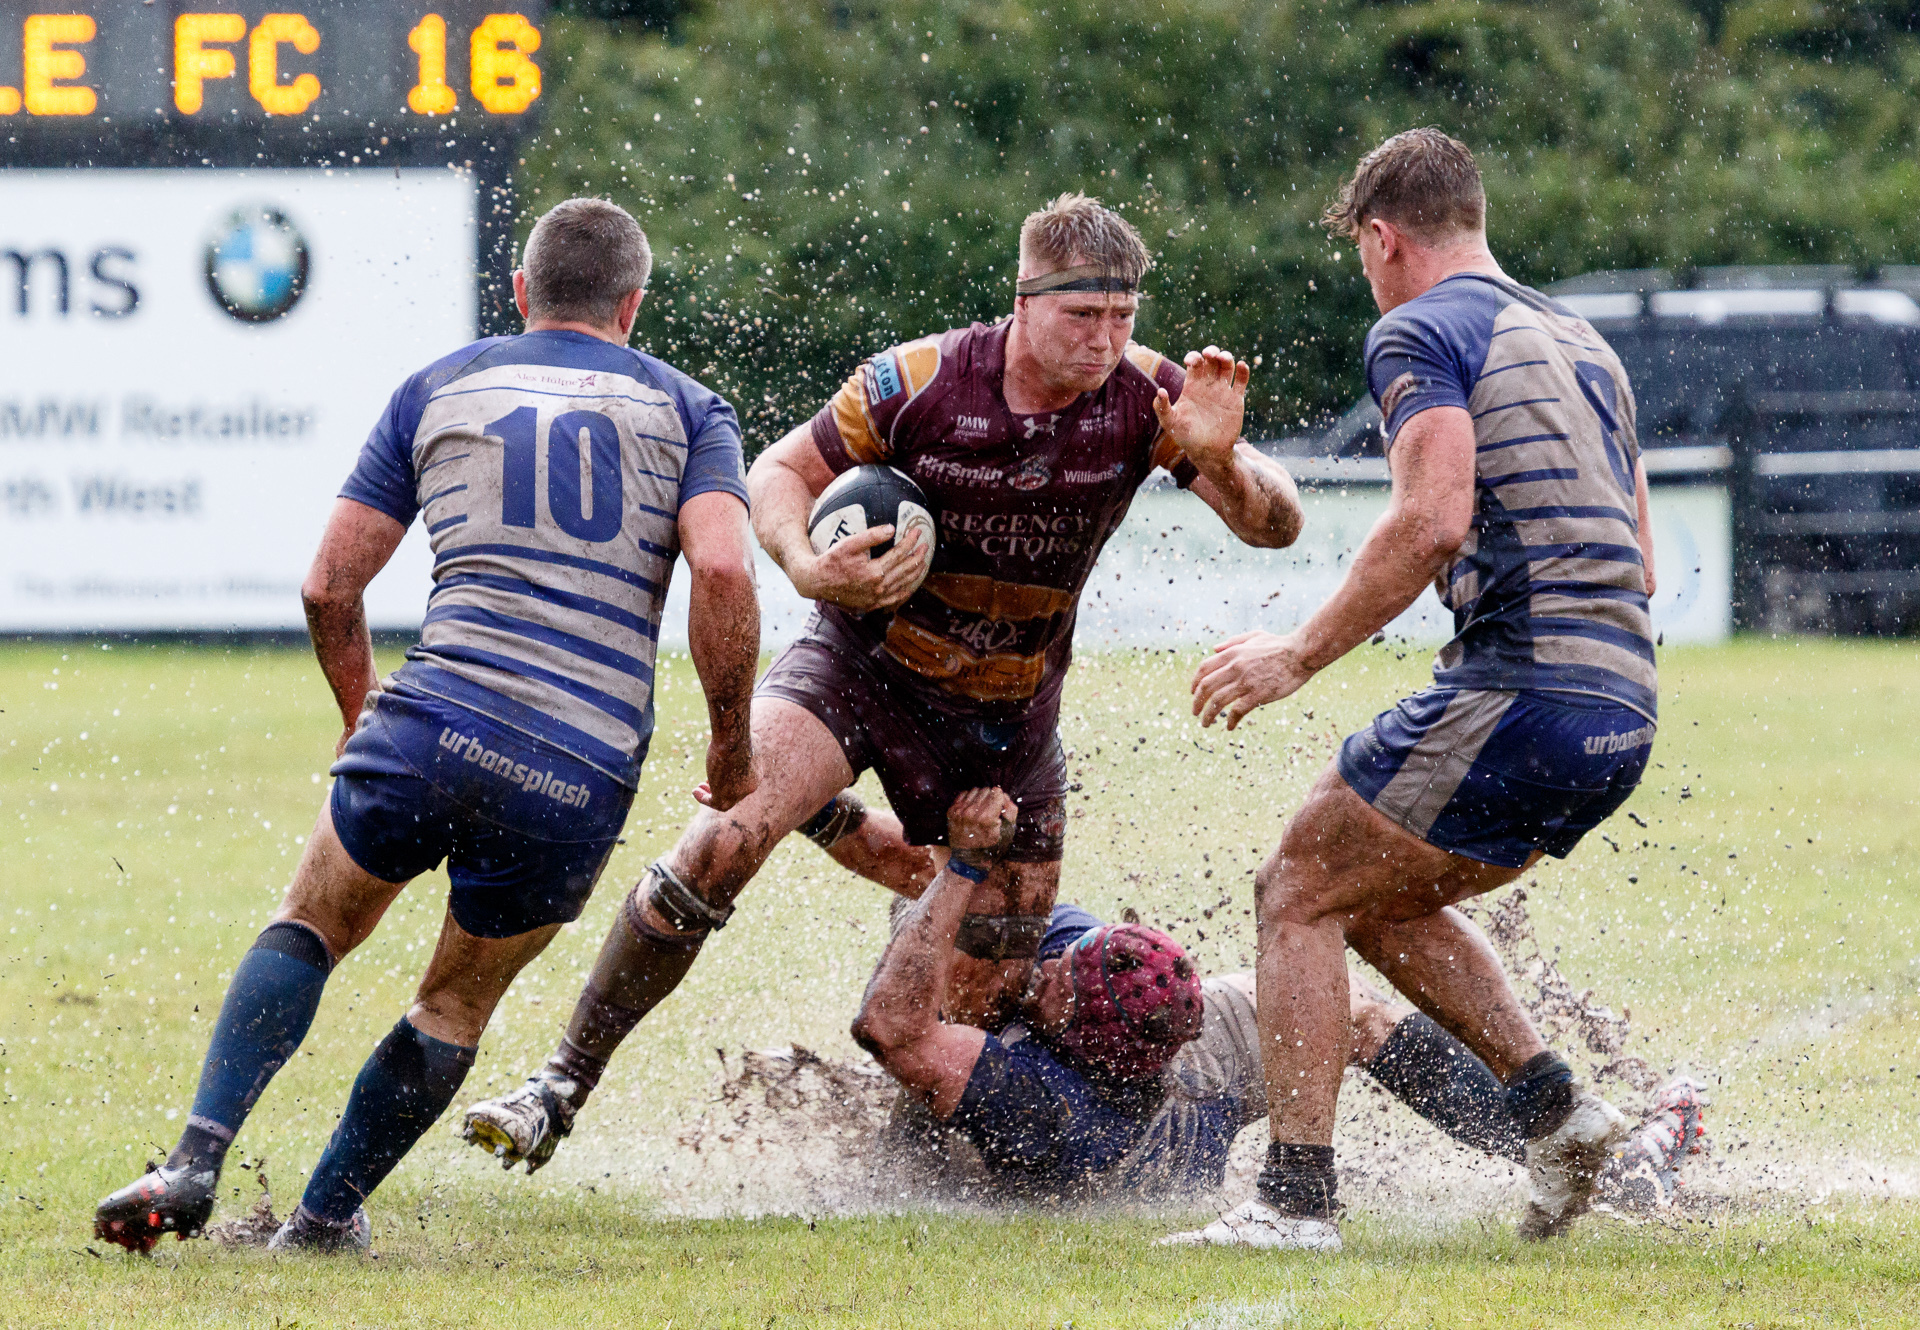 ON THE MARK: Sedgley Park's Hallam Chapman, pictured in action against Sale FC, scored a try against Chinnor